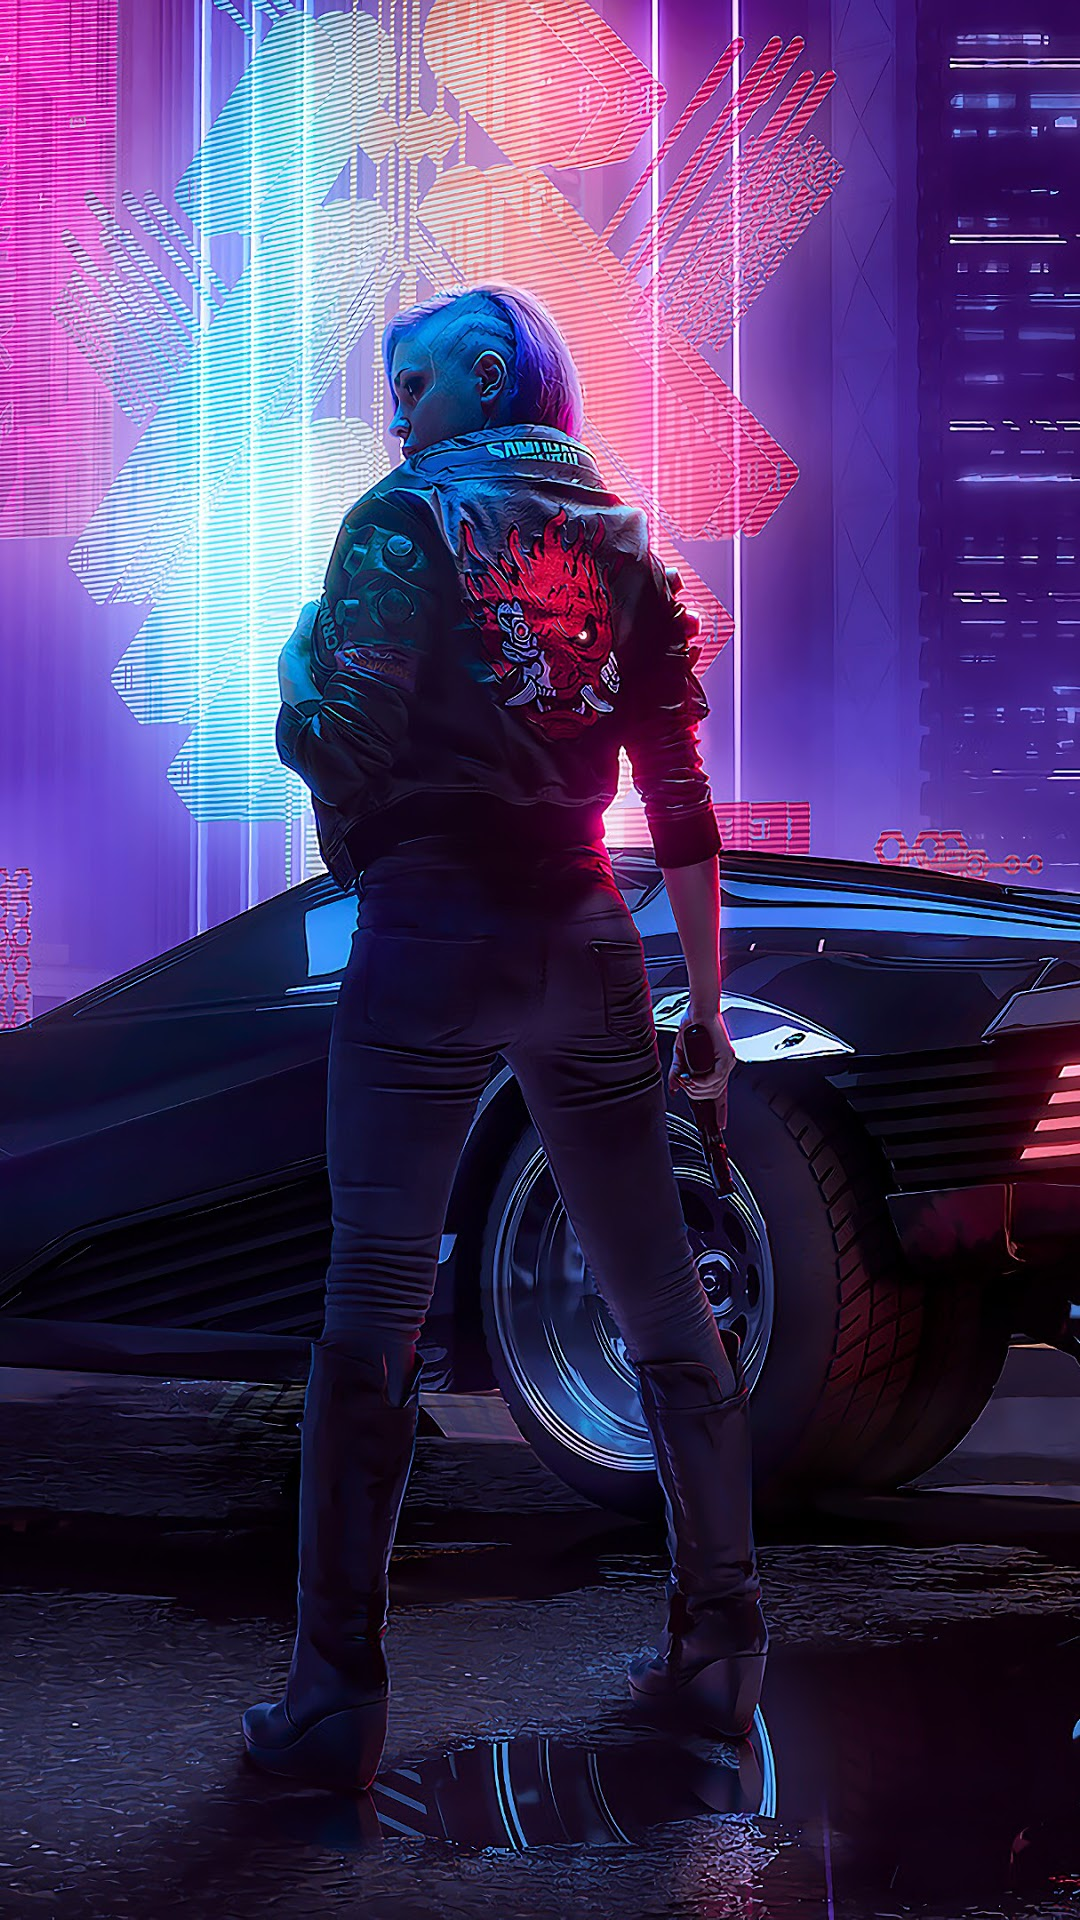 1440p Cyberpunk 2077 Wallpaper : 1440p, cyberpunk, wallpaper, Cyberpunk, Wallpaper, Posted, Michelle, Simpson